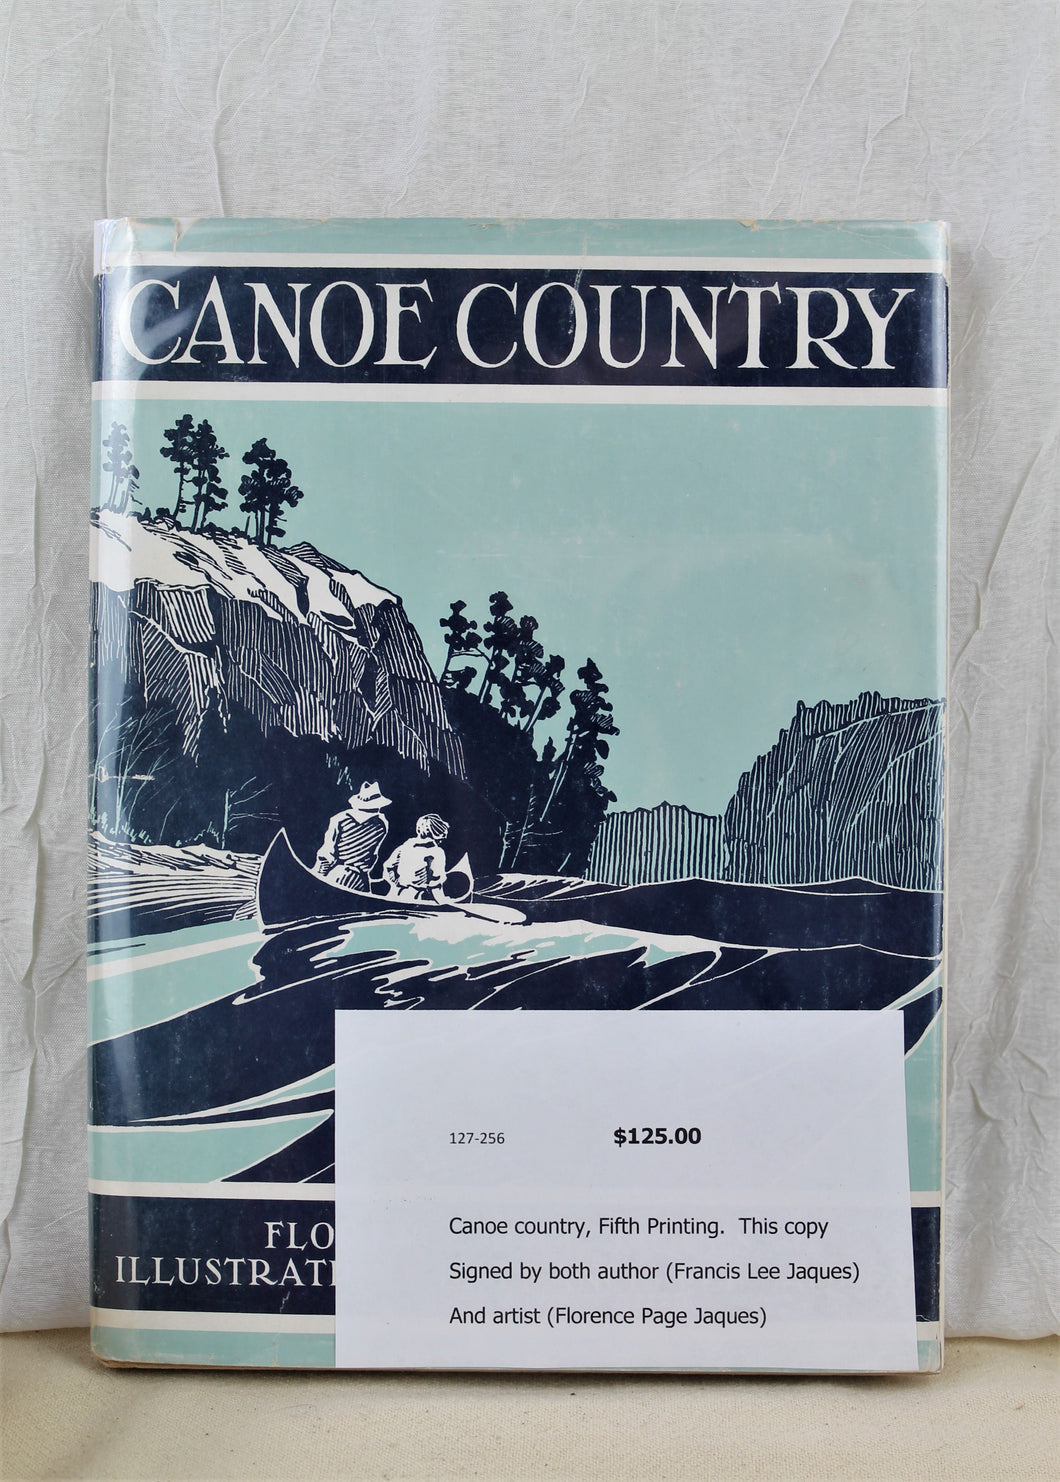 Canoe Country 5th edition Book/Signed